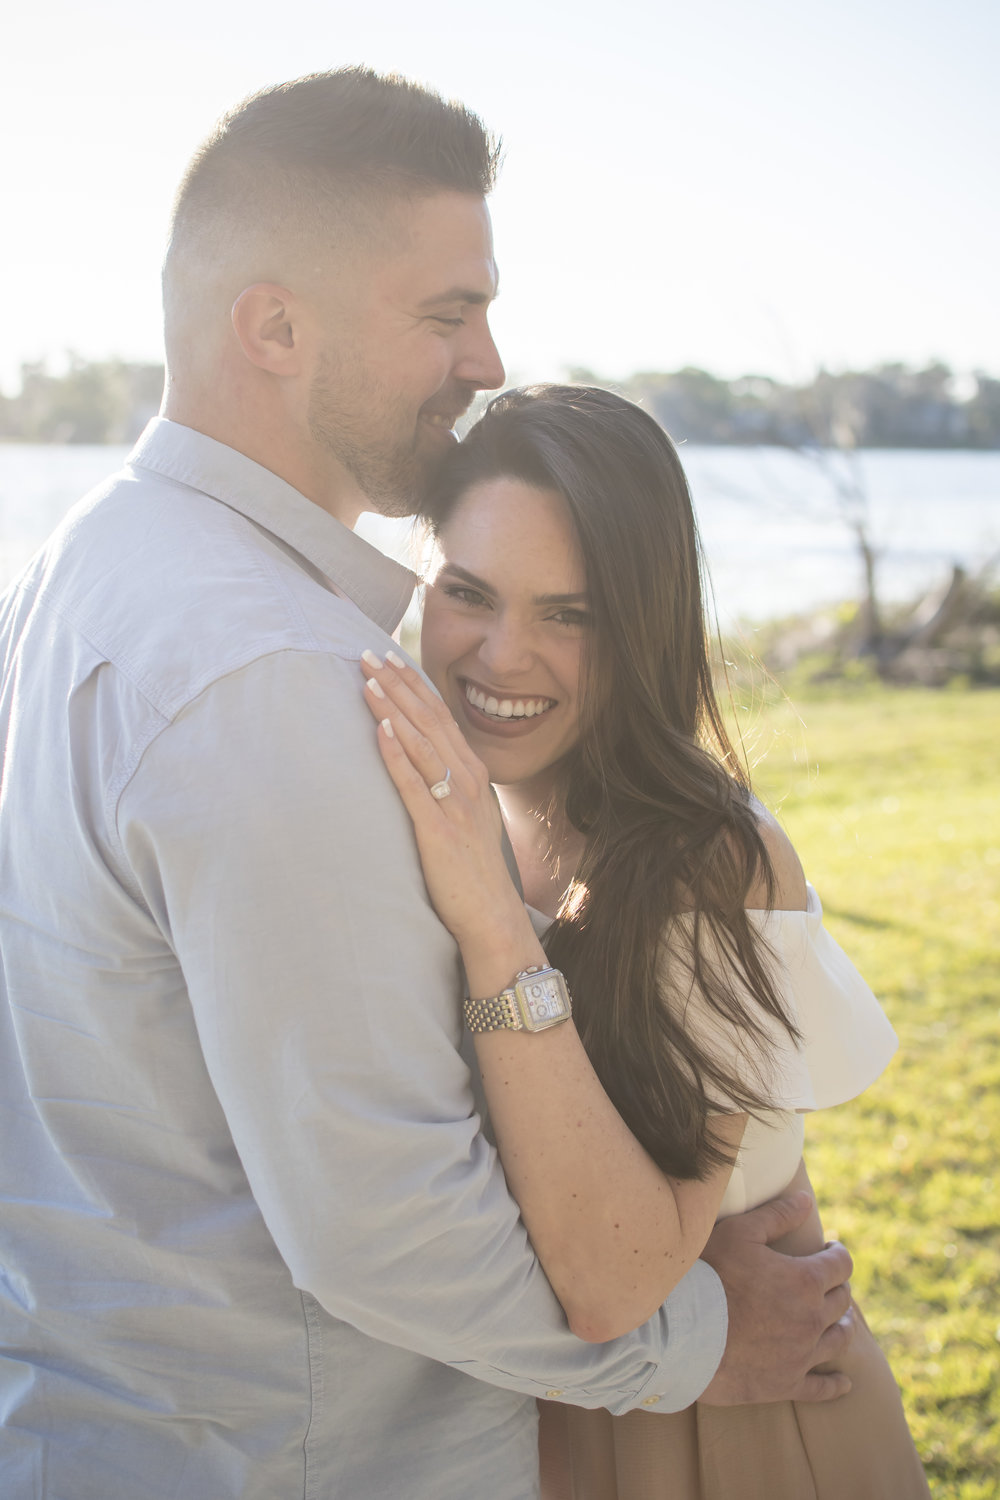 cypress-grove-park-engagement-session-orlando-photographer-yanitza-ninett-1-3.jpg